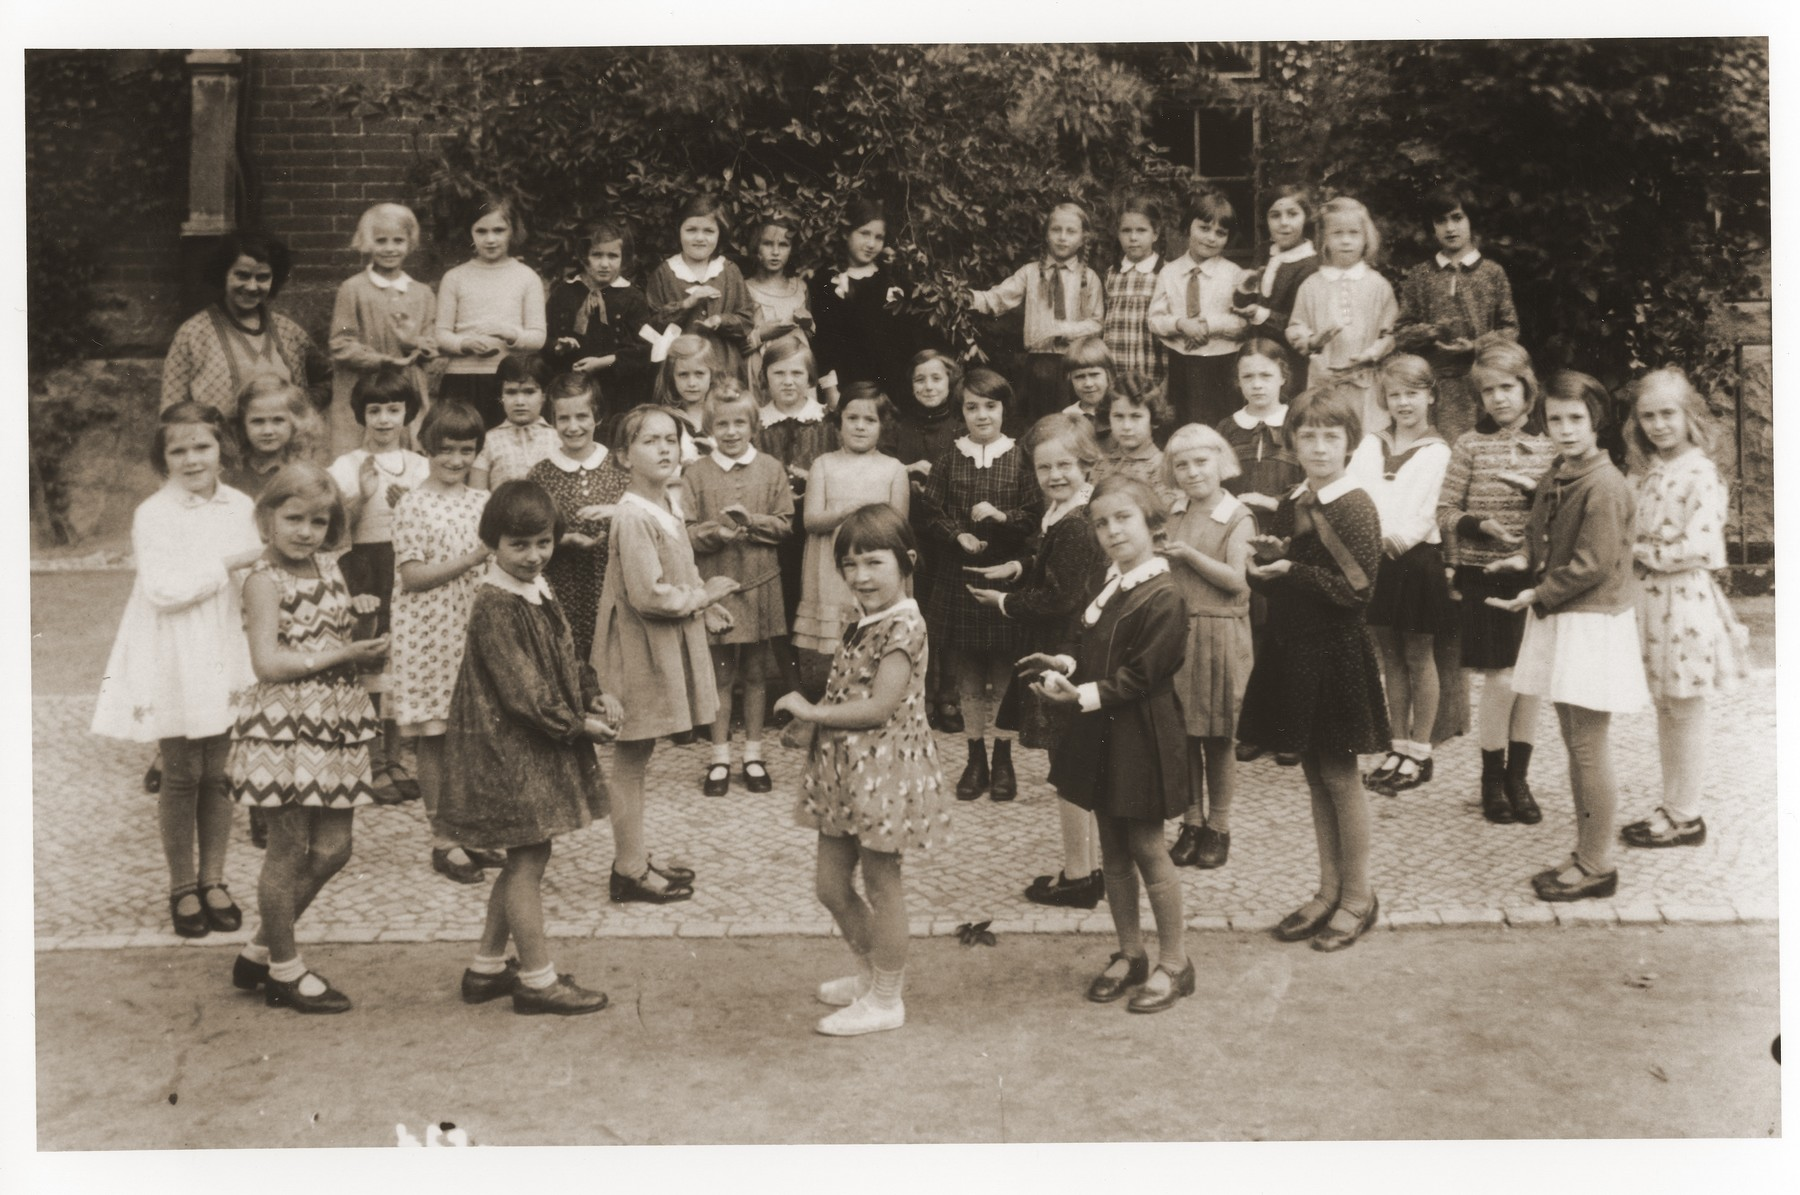 Group portrait of pupils in the yard of the Szbelstrasse elementary school in Berlin.  Among those pictured is Ursel Glasfeld.